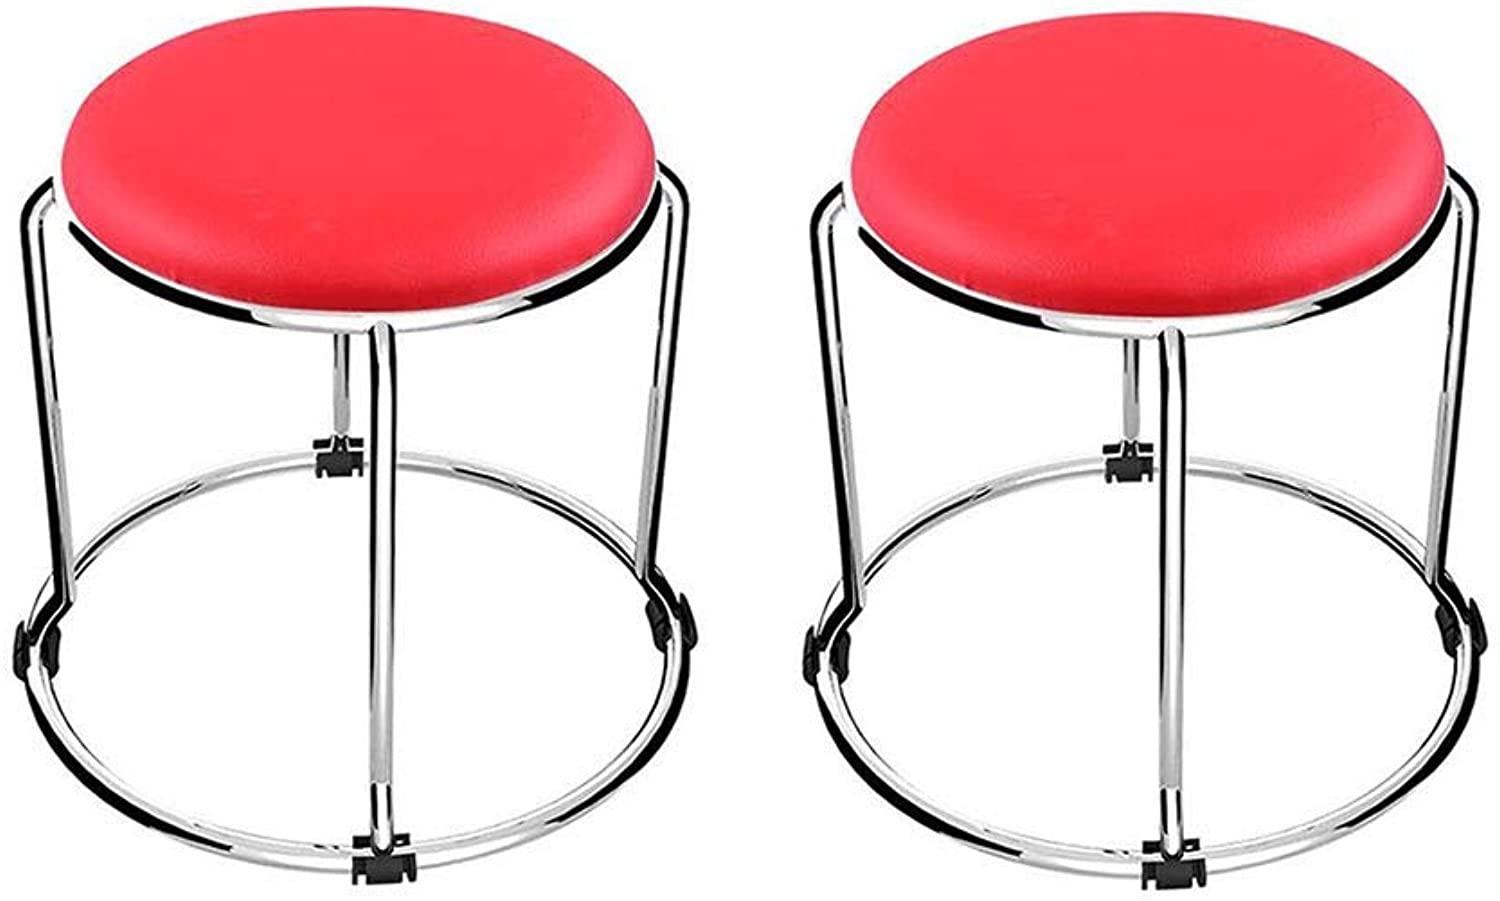 QIQI-LIFE Small PU Round Stool, Stainless Steel Folding Art Footstool Sofa Stool, Living Room Kitchen (color   Red 1)